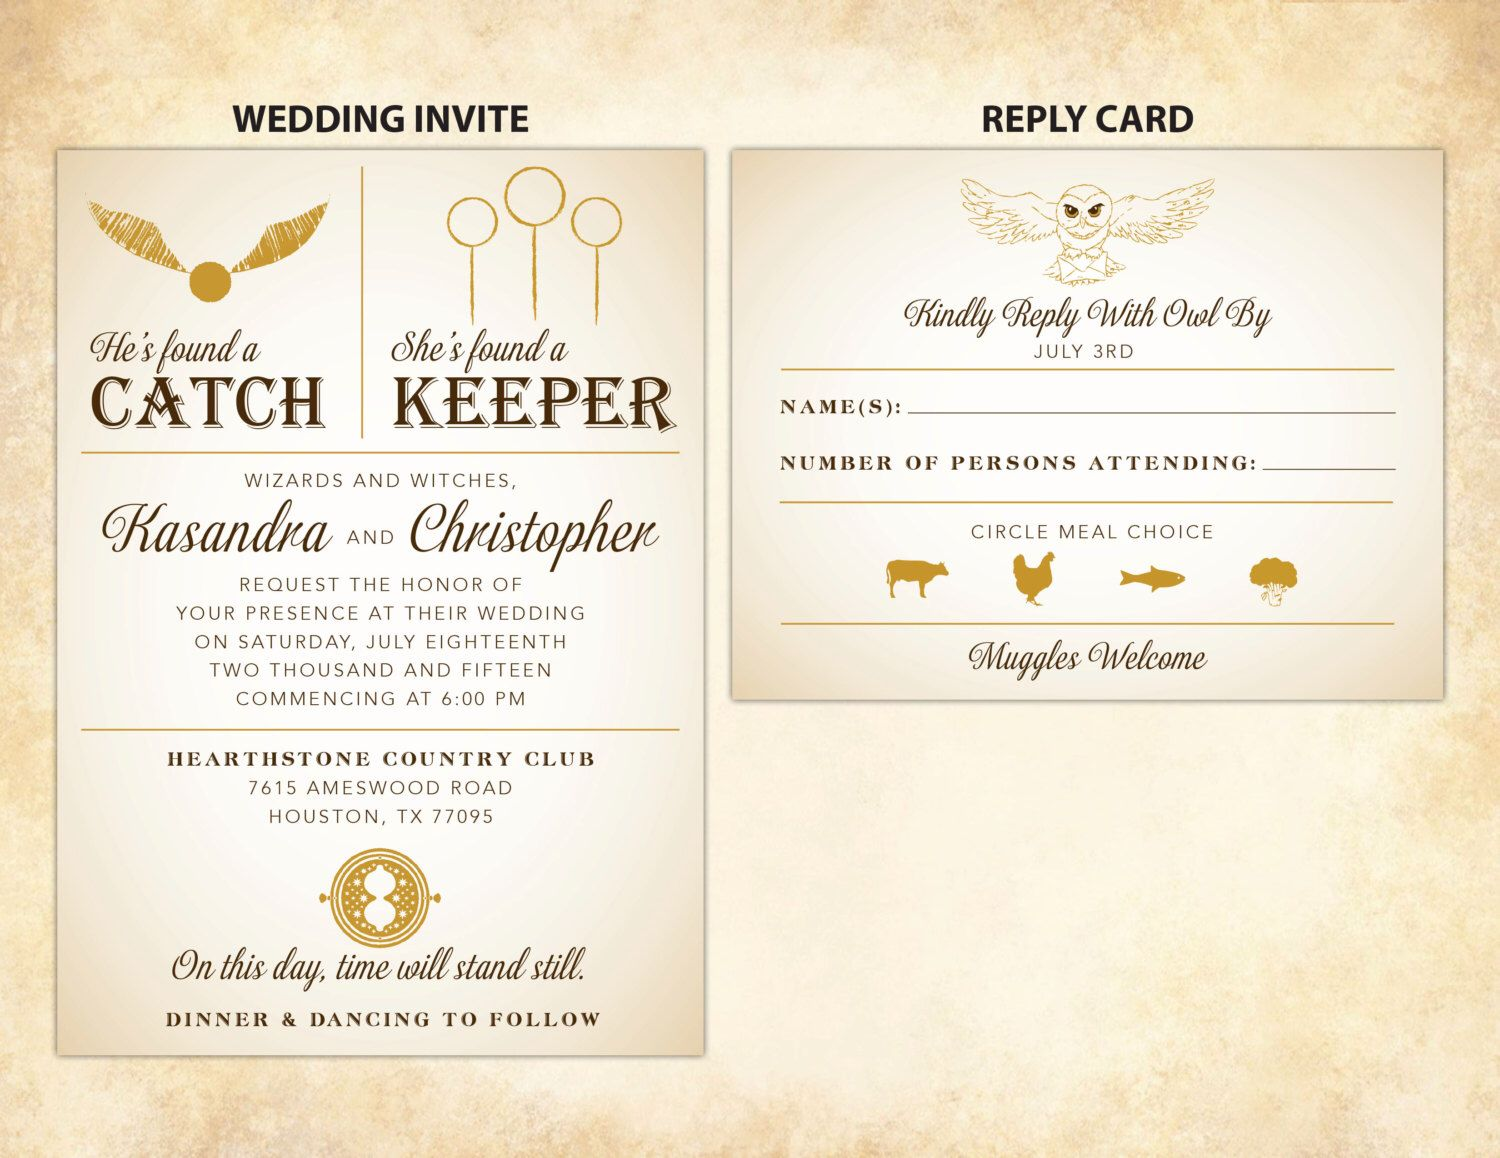 Harry Potter Wedding Invitation Rsvp Card Diy Printable Etsy In 2021 Harry Potter Wedding Invitations Harry Potter Wedding Harry Potter Wedding Theme